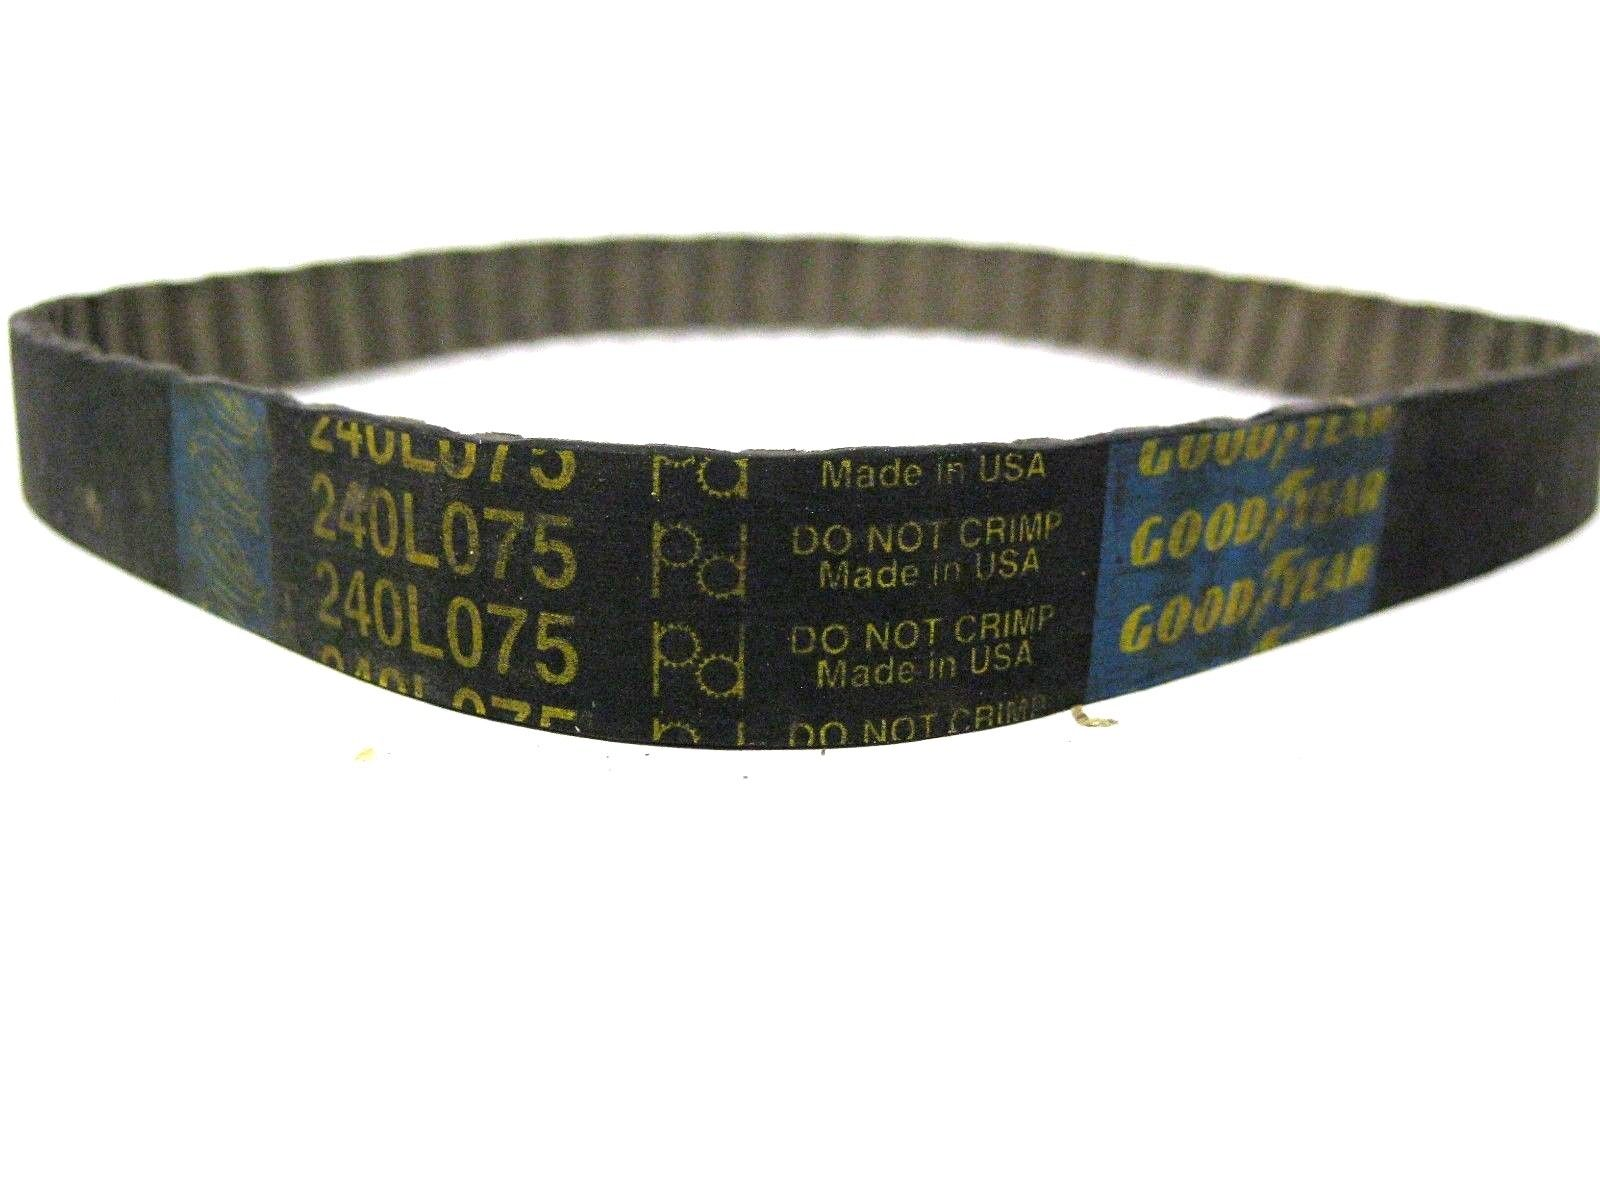 WOODS MANUFACTURING 210L075 Replacement Belt